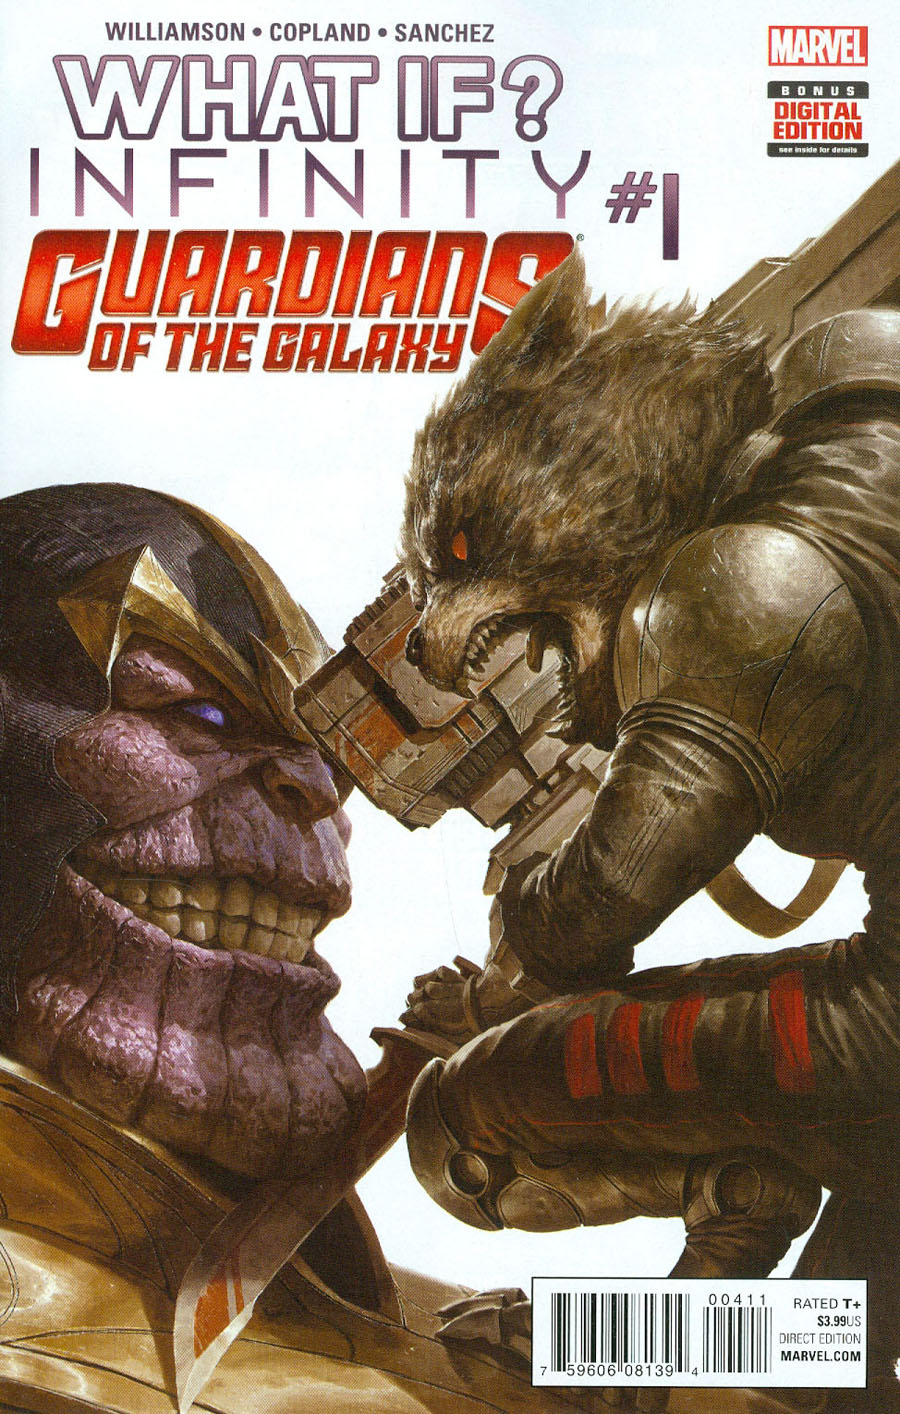 What If Infinity Guardians Of The Galaxy #1